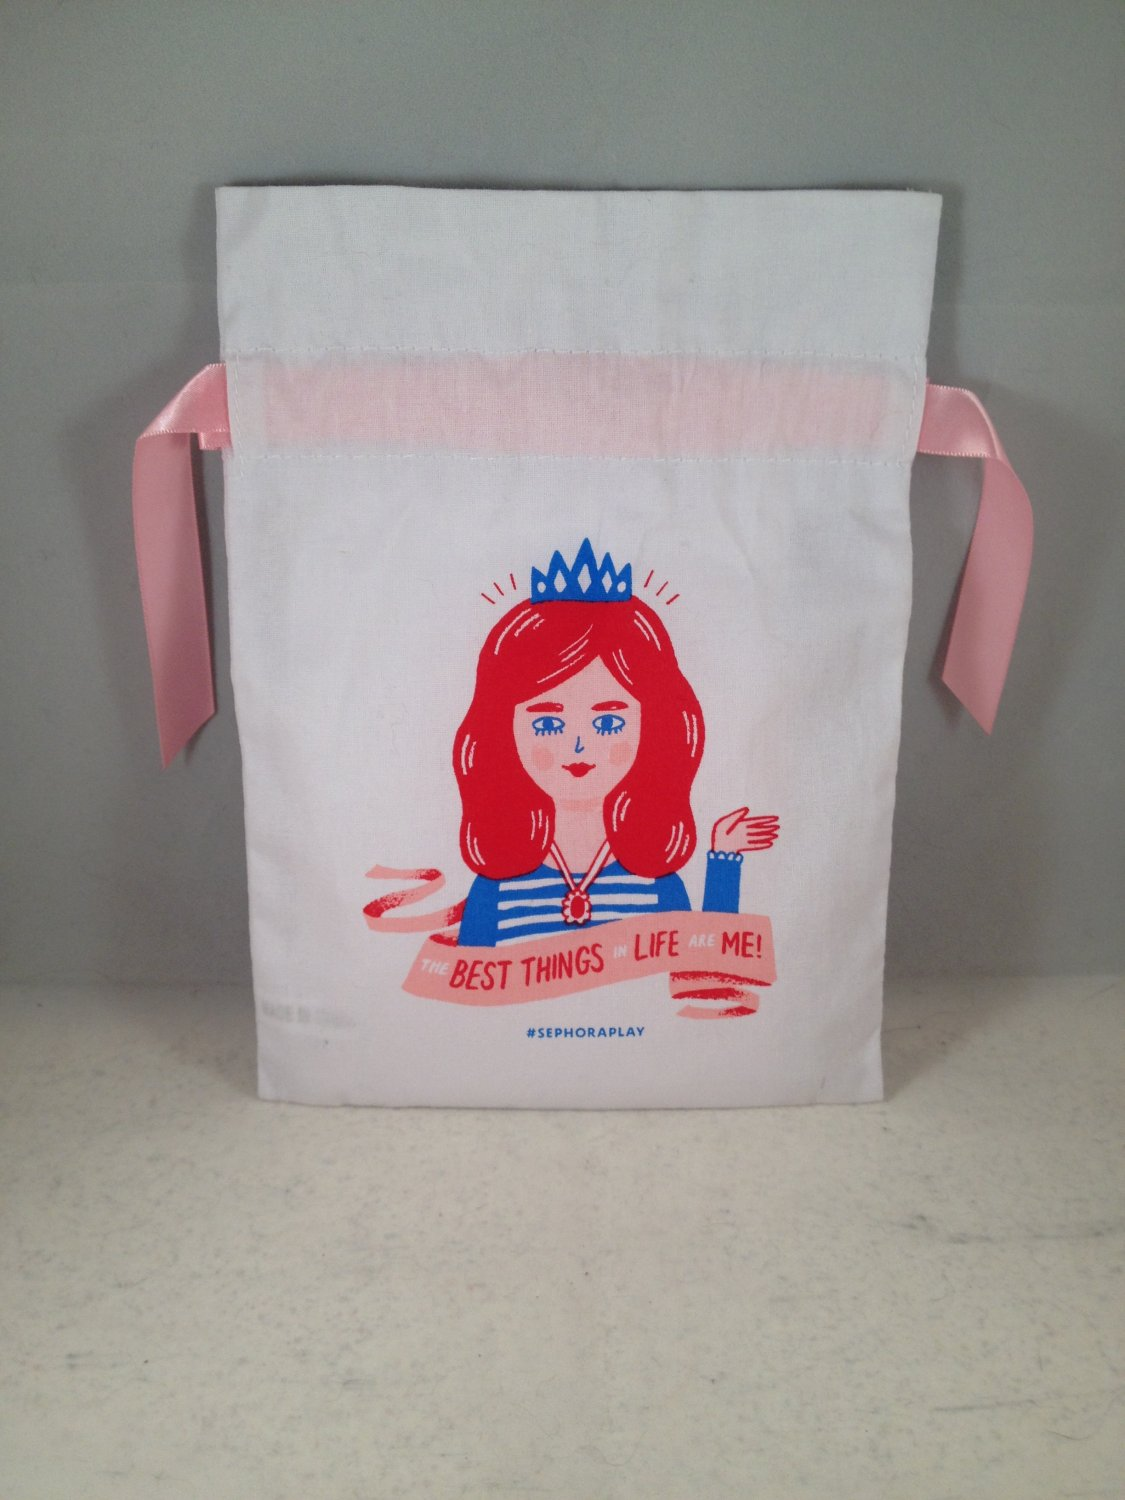 Sephora Play Drawstring Cloth Makeup Bag The Best Things In Life Are Me! April 2017 empty